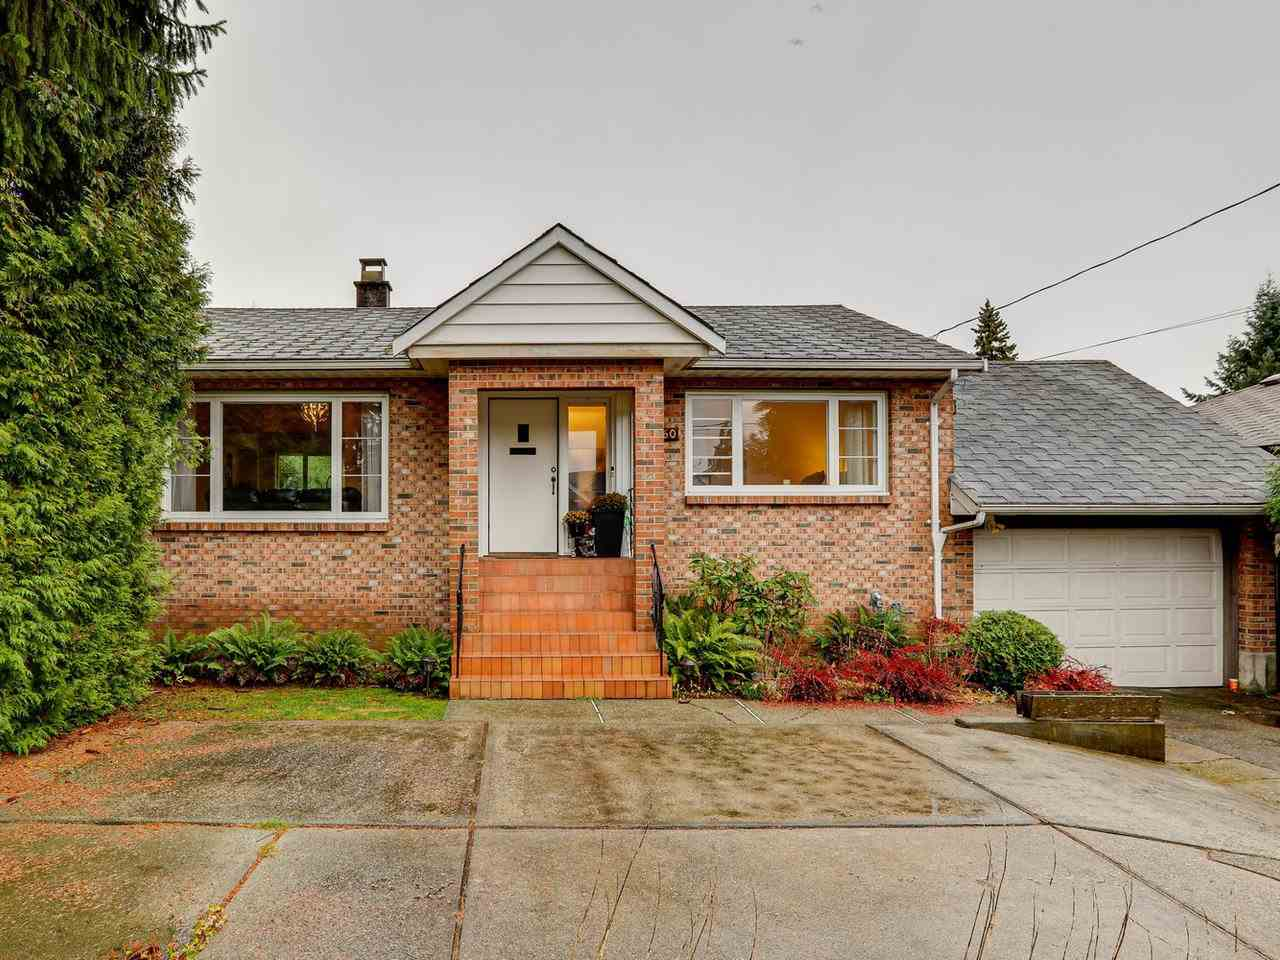 For Sale: 7260 Sutliff Street, Burnaby, BC | 4 Bed, 2 Bath House for $1499000.